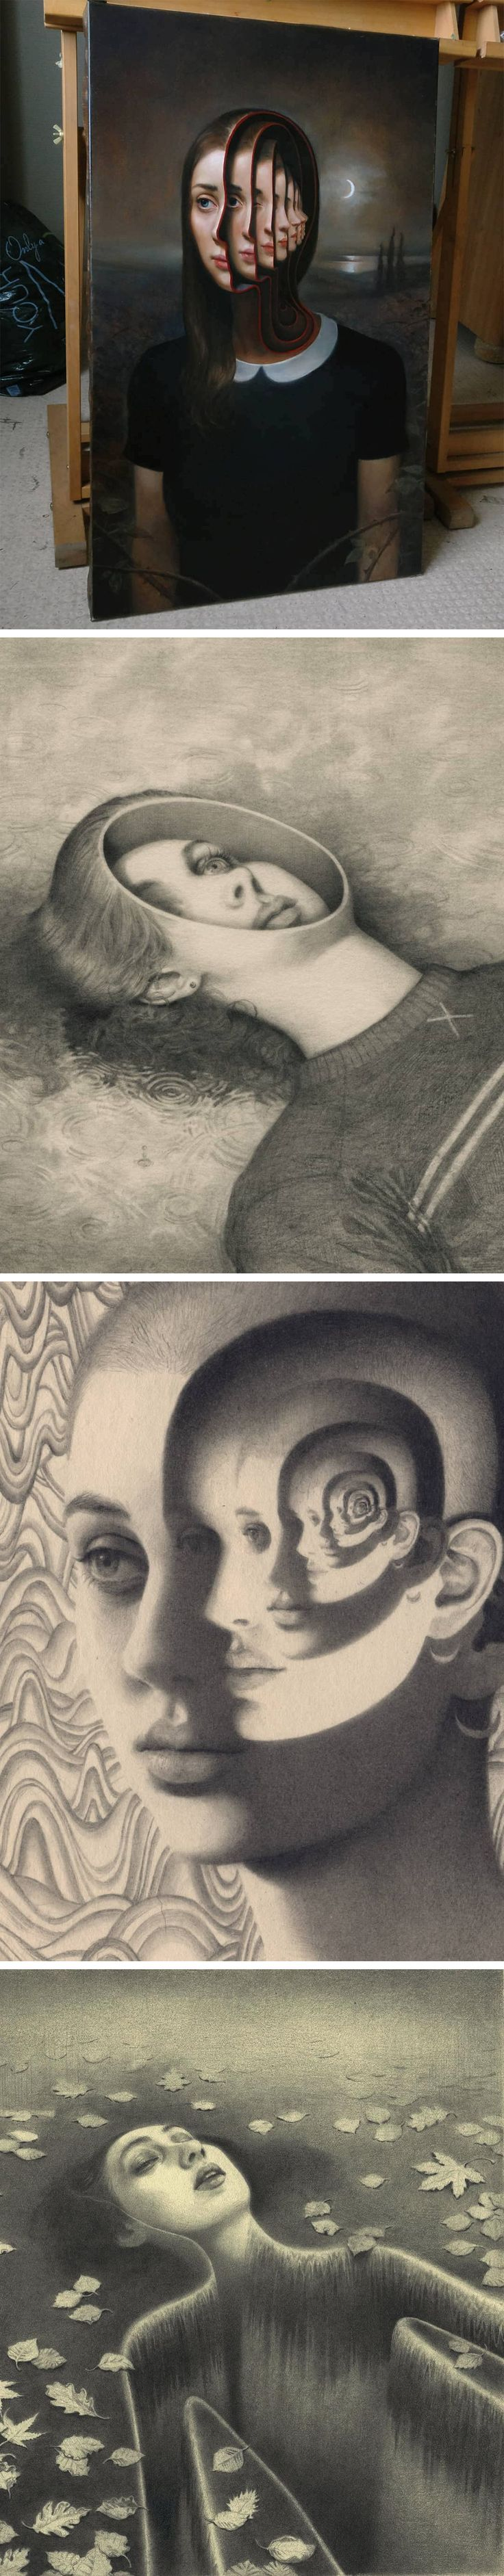 New Mesmerizing Oil and Graphite Portraits That Peer Into the Subject's Inner Mind by Miles Johnston